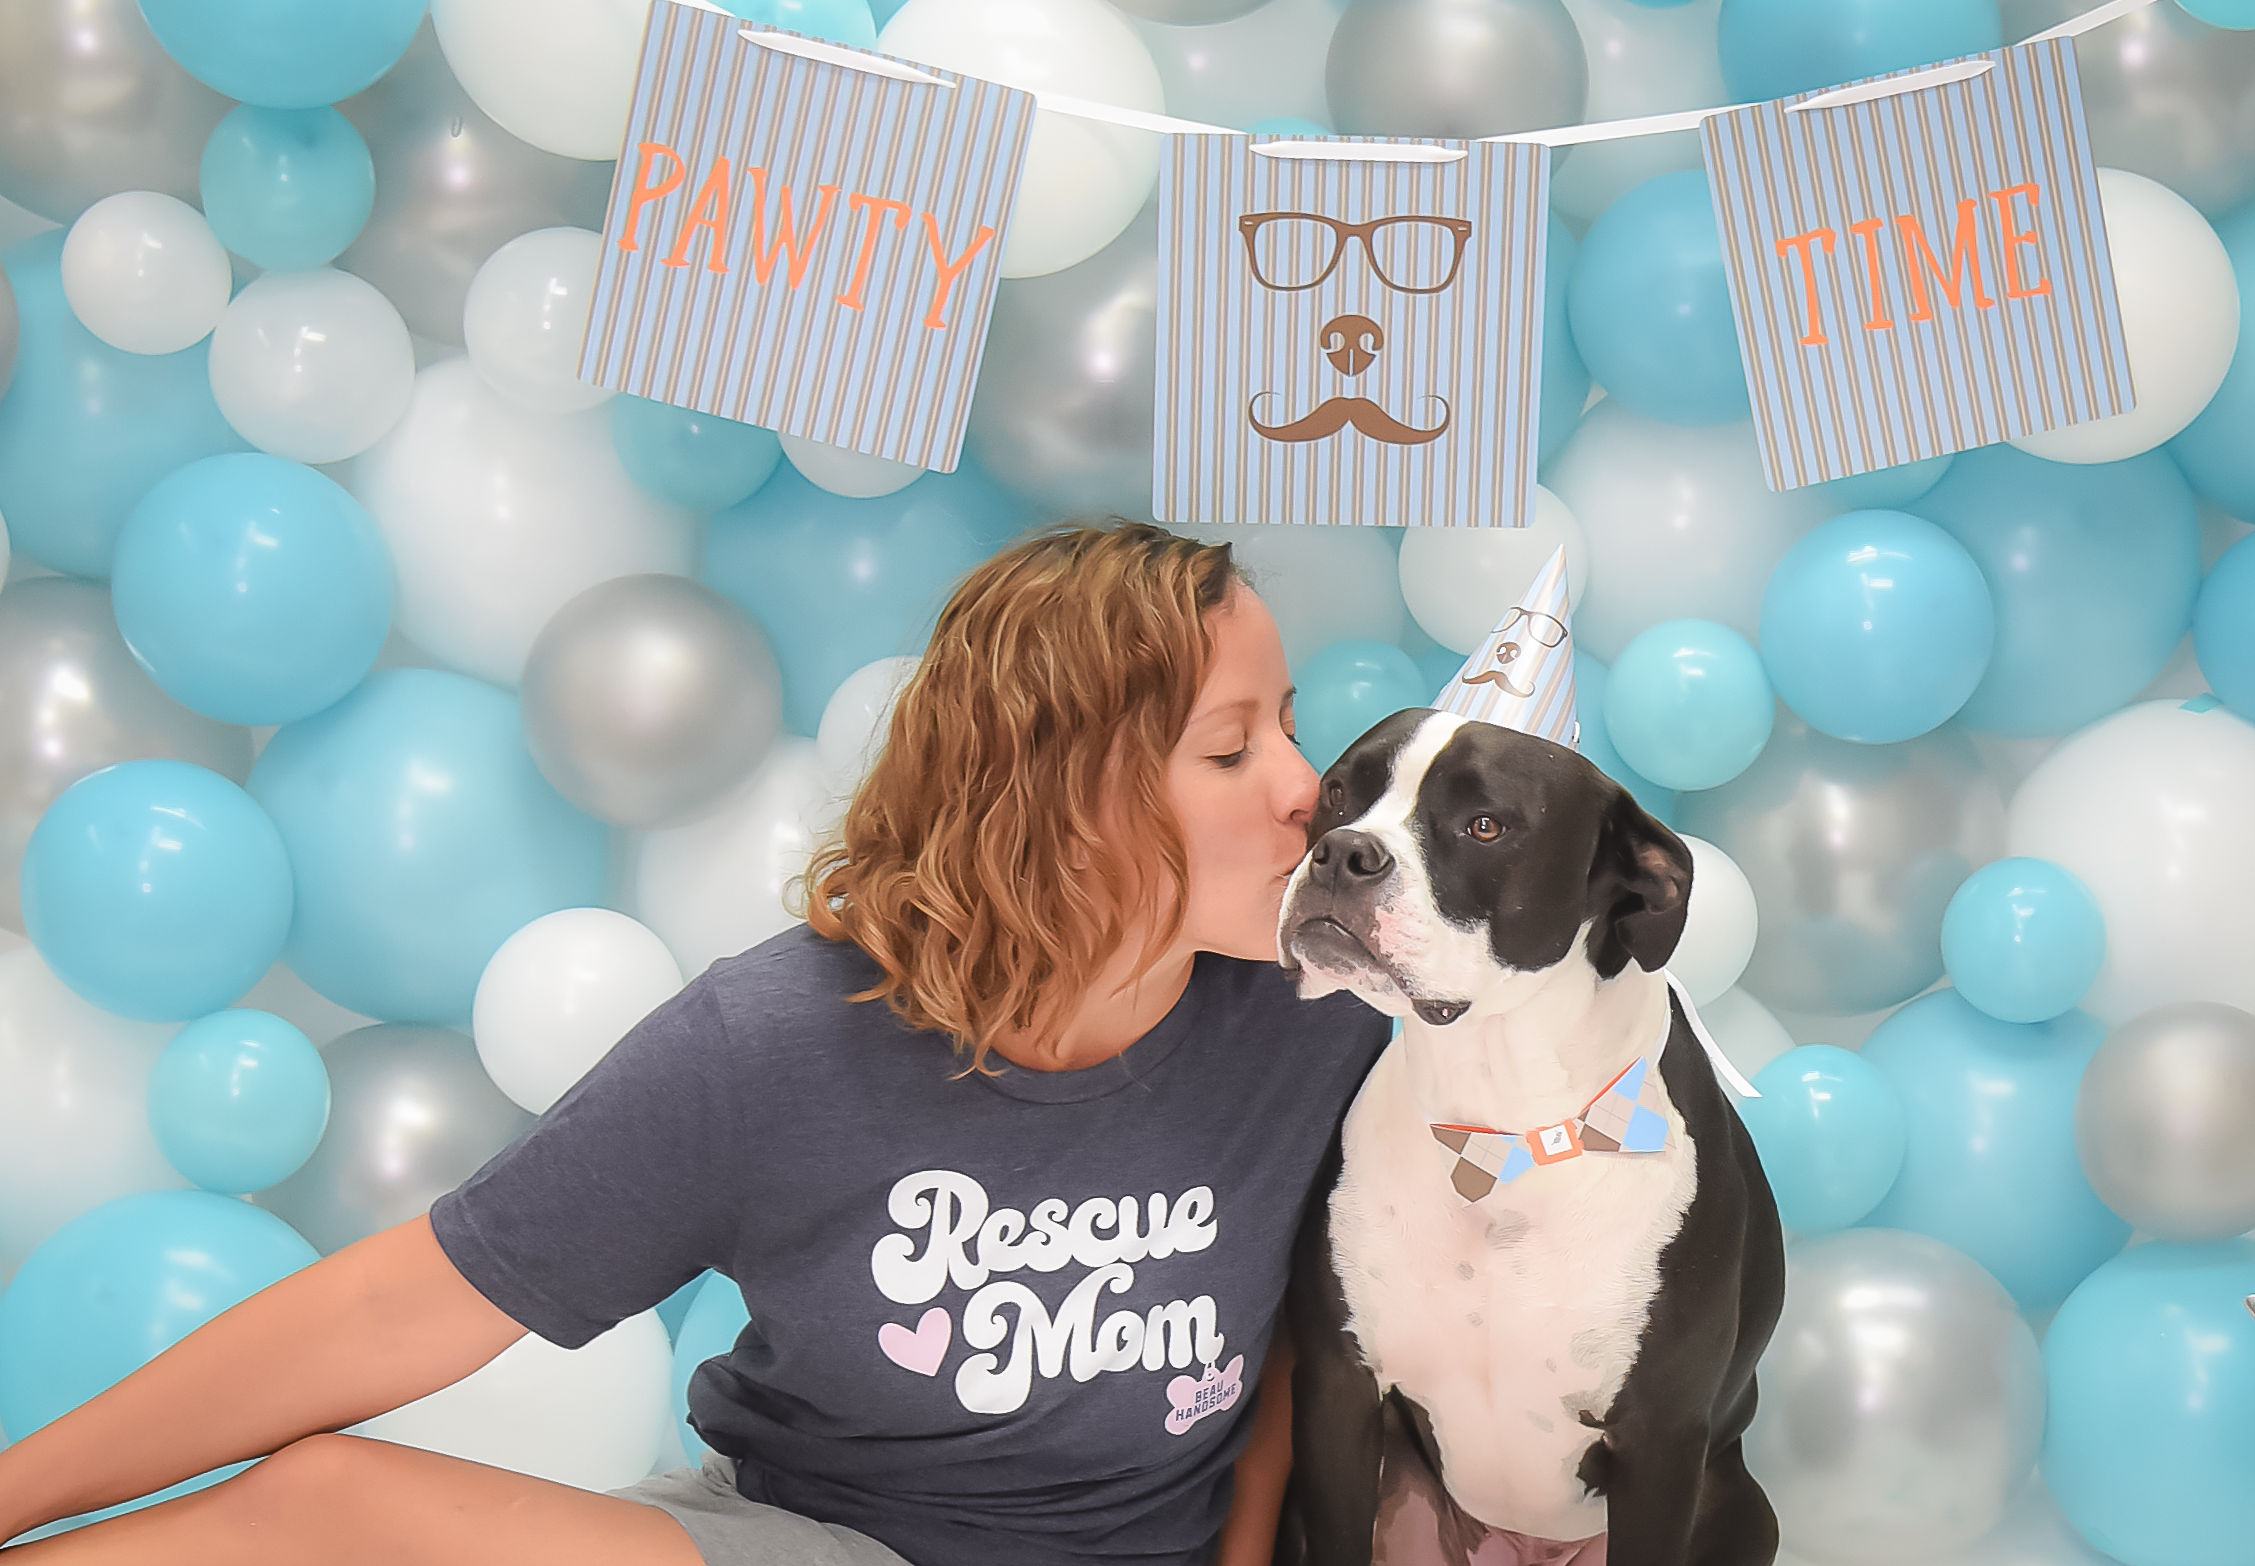 Nouba passed away in 2016, but his legacy lives on as the star of the Pawty in a Box logo. This is Mandy with her new dog, Beau Handsome.